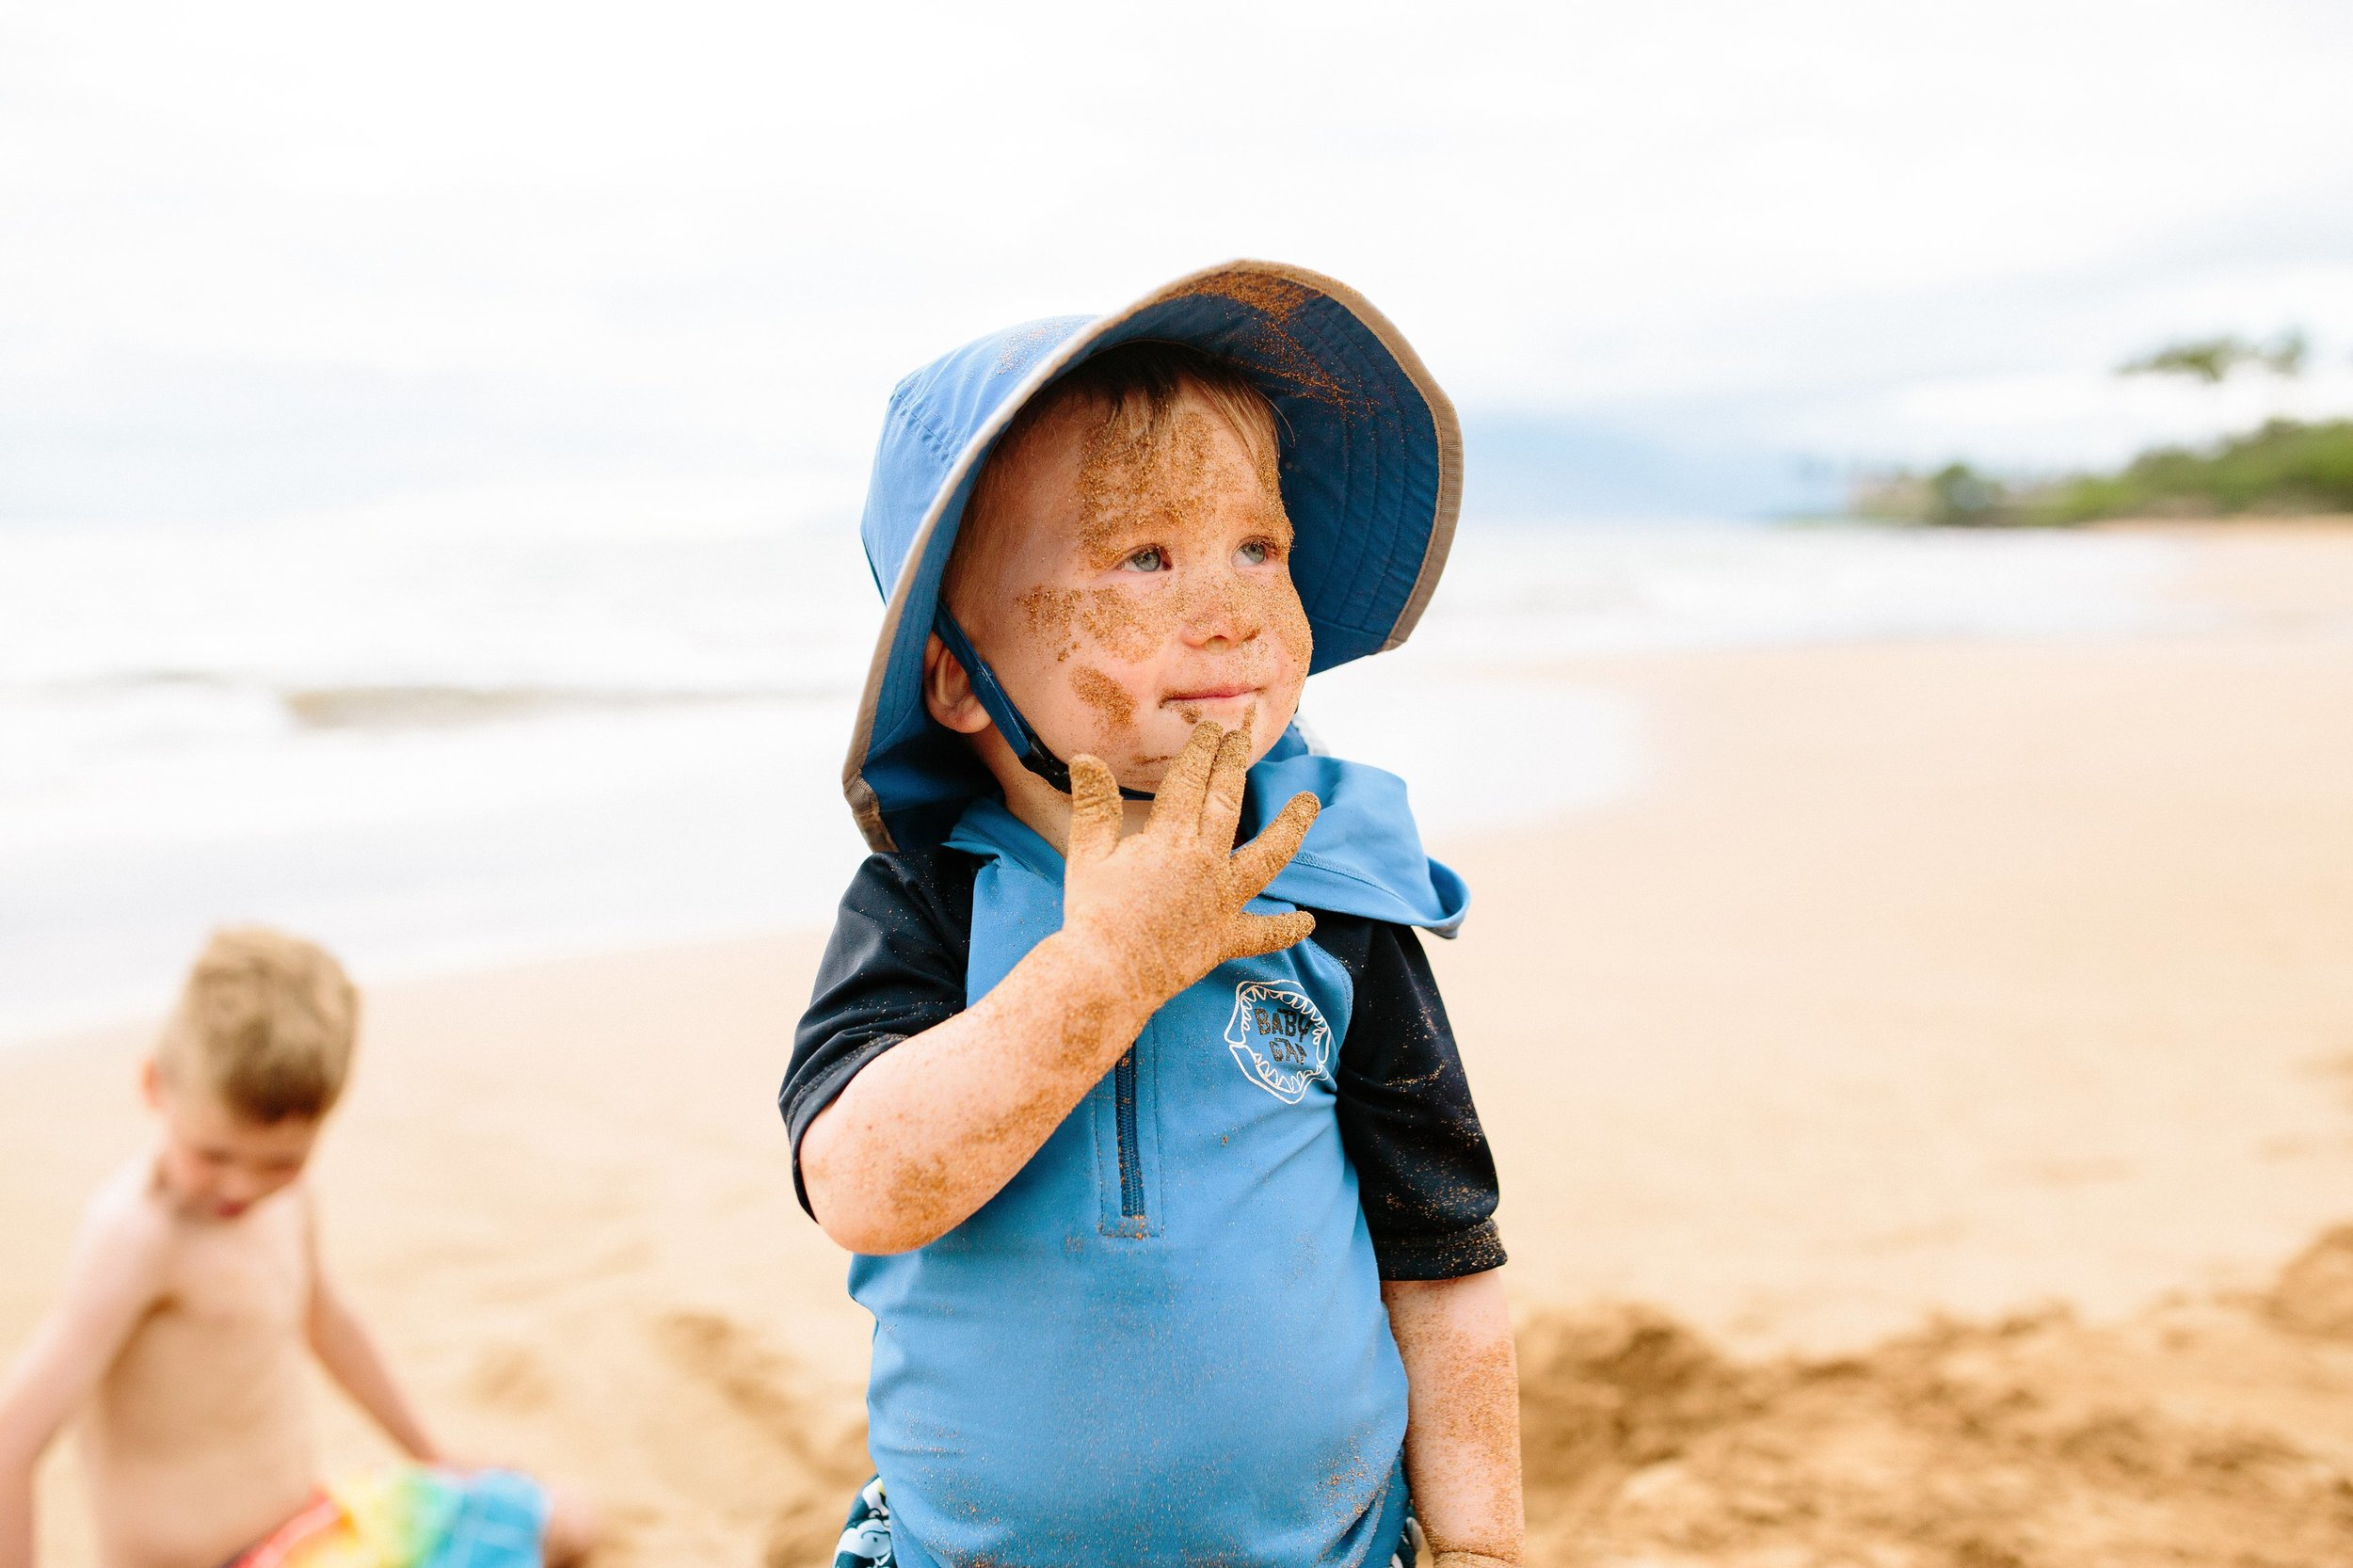 Kid eating sand Family Beach Day Photo Session on Maui by Seattle Lifestyle Photographer Janelle Elaine Photography.jpg